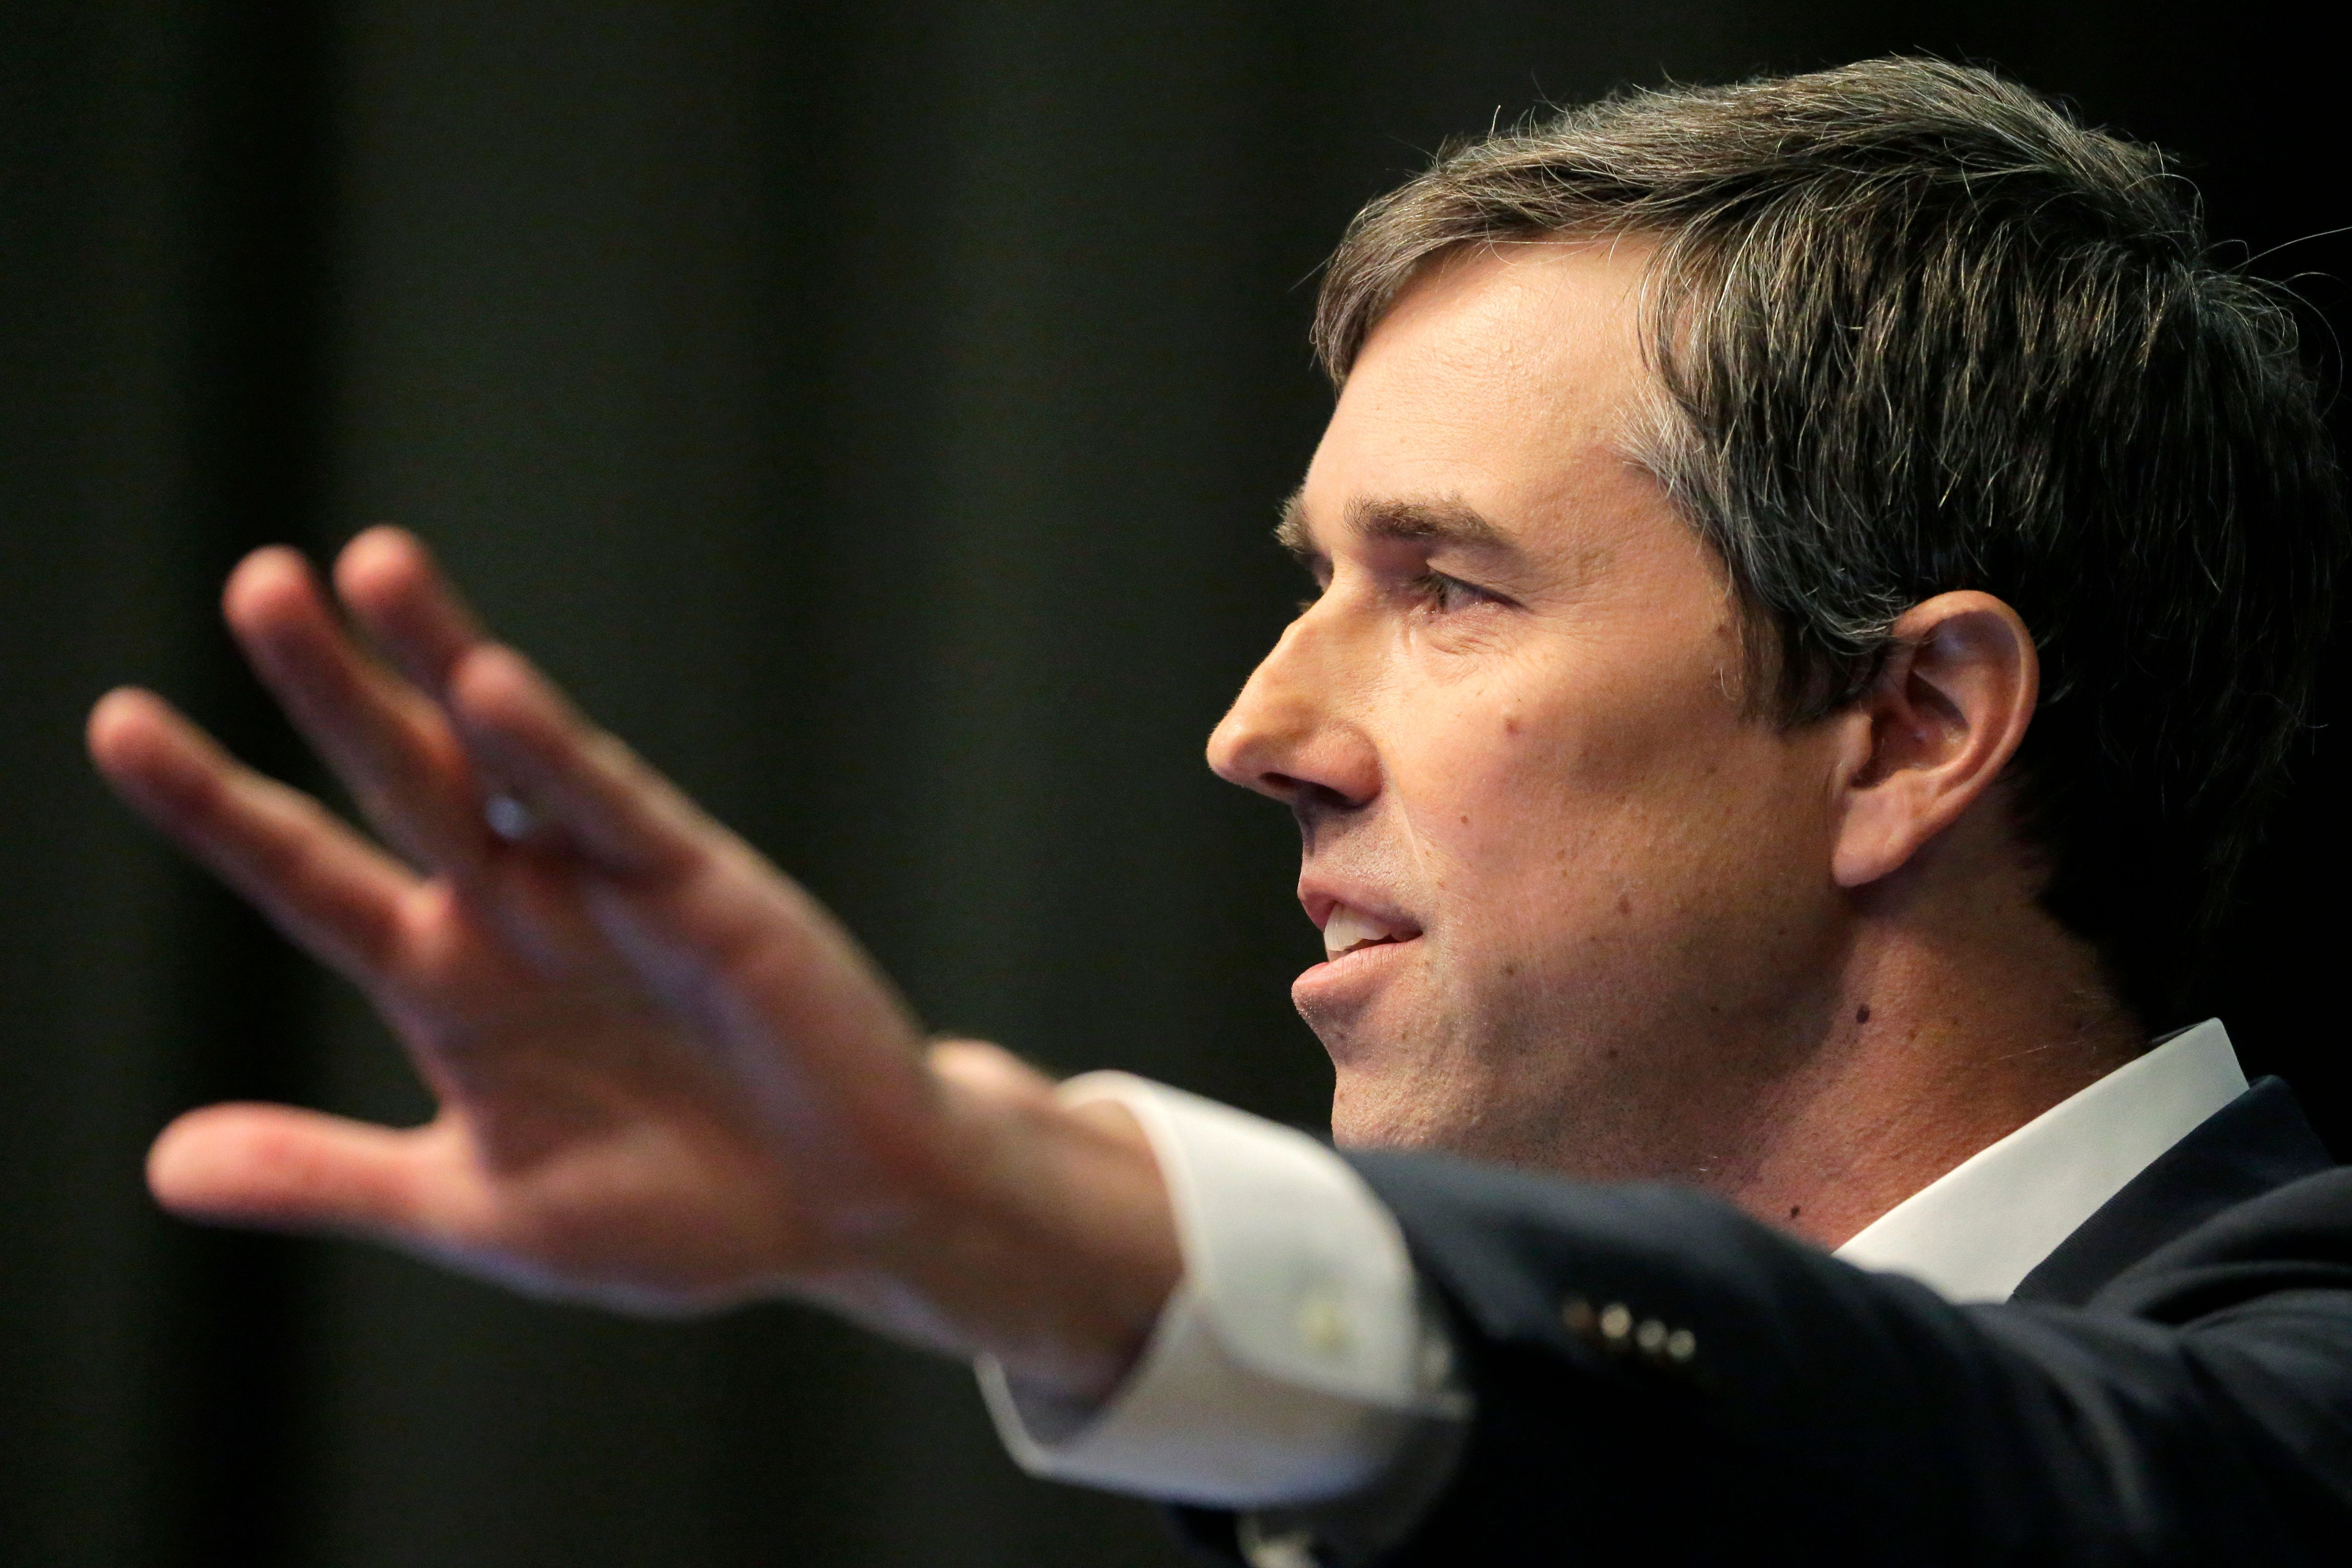 Beto O'Rourke Becomes Latest Contender To Release 10 Years Of Tax